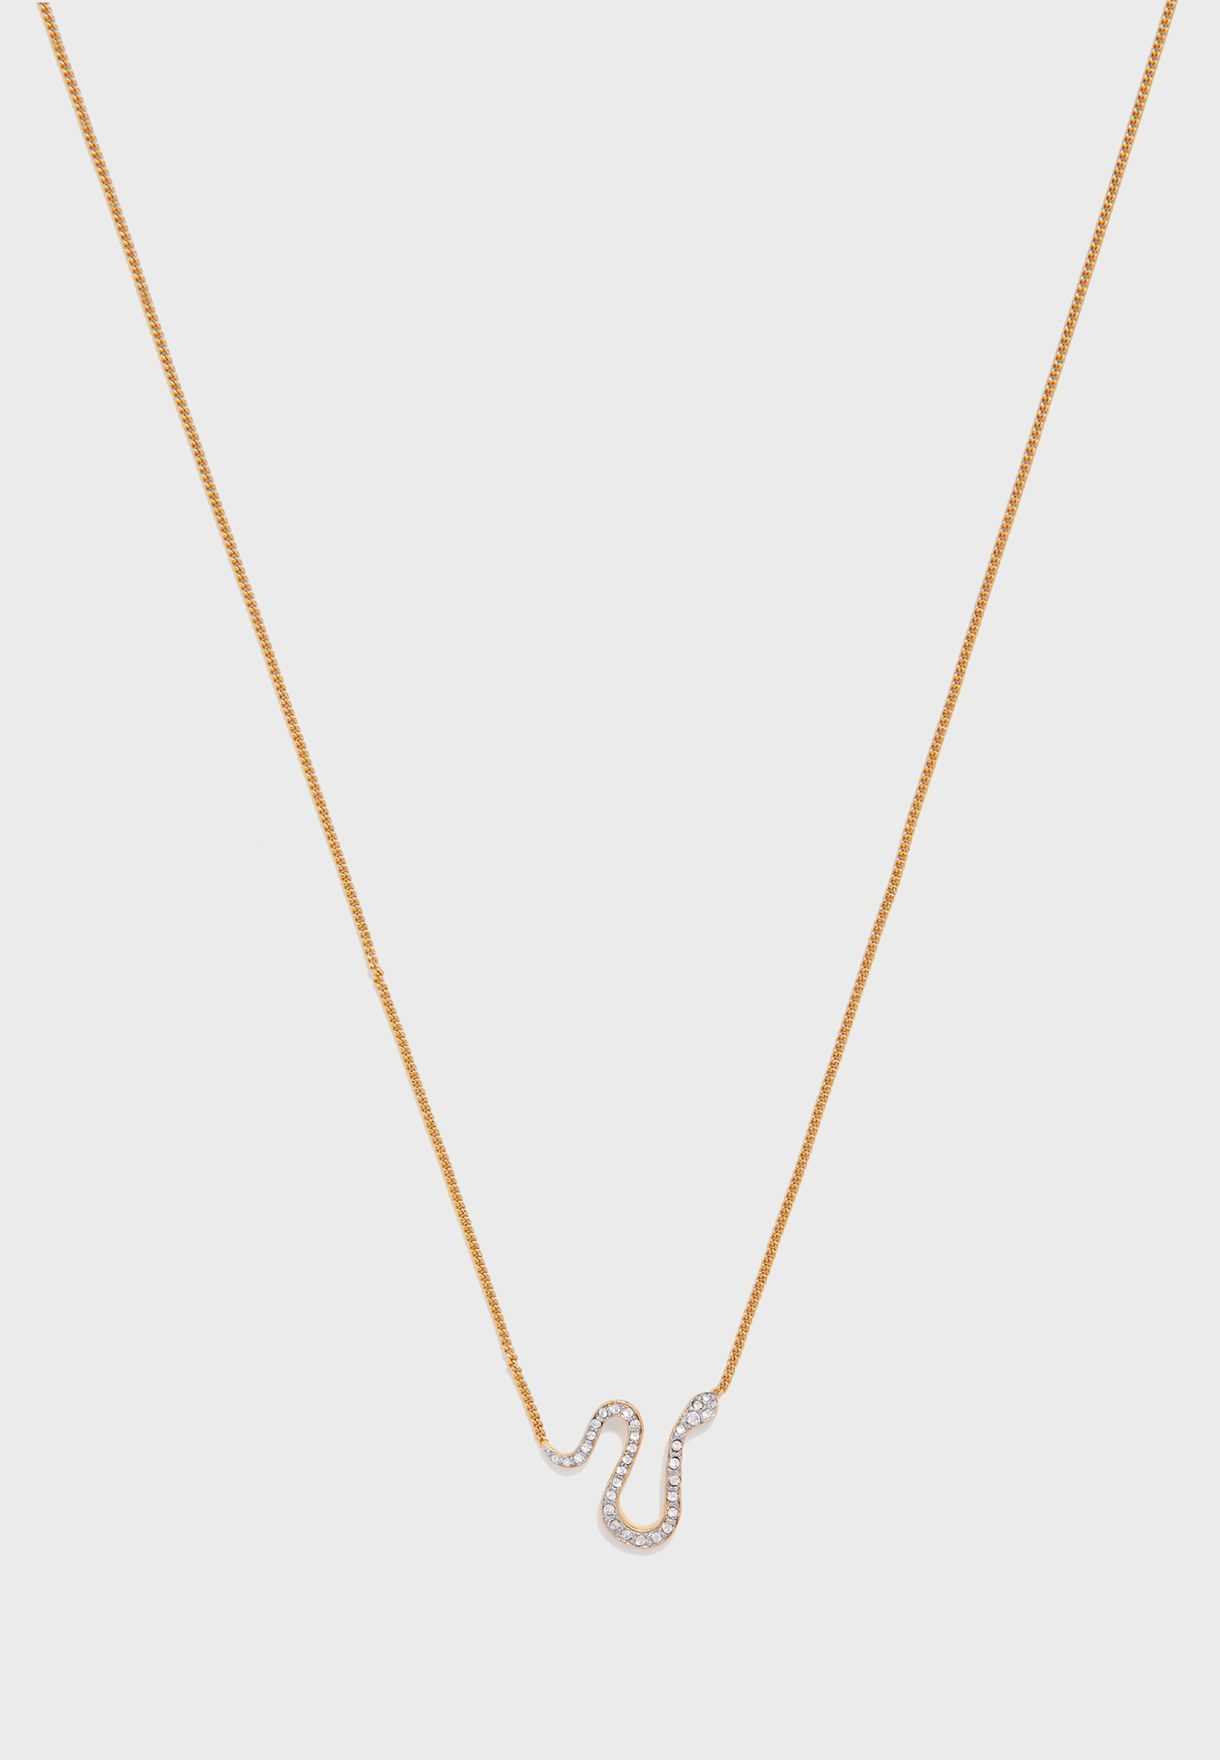 Pav Serpent Necklace